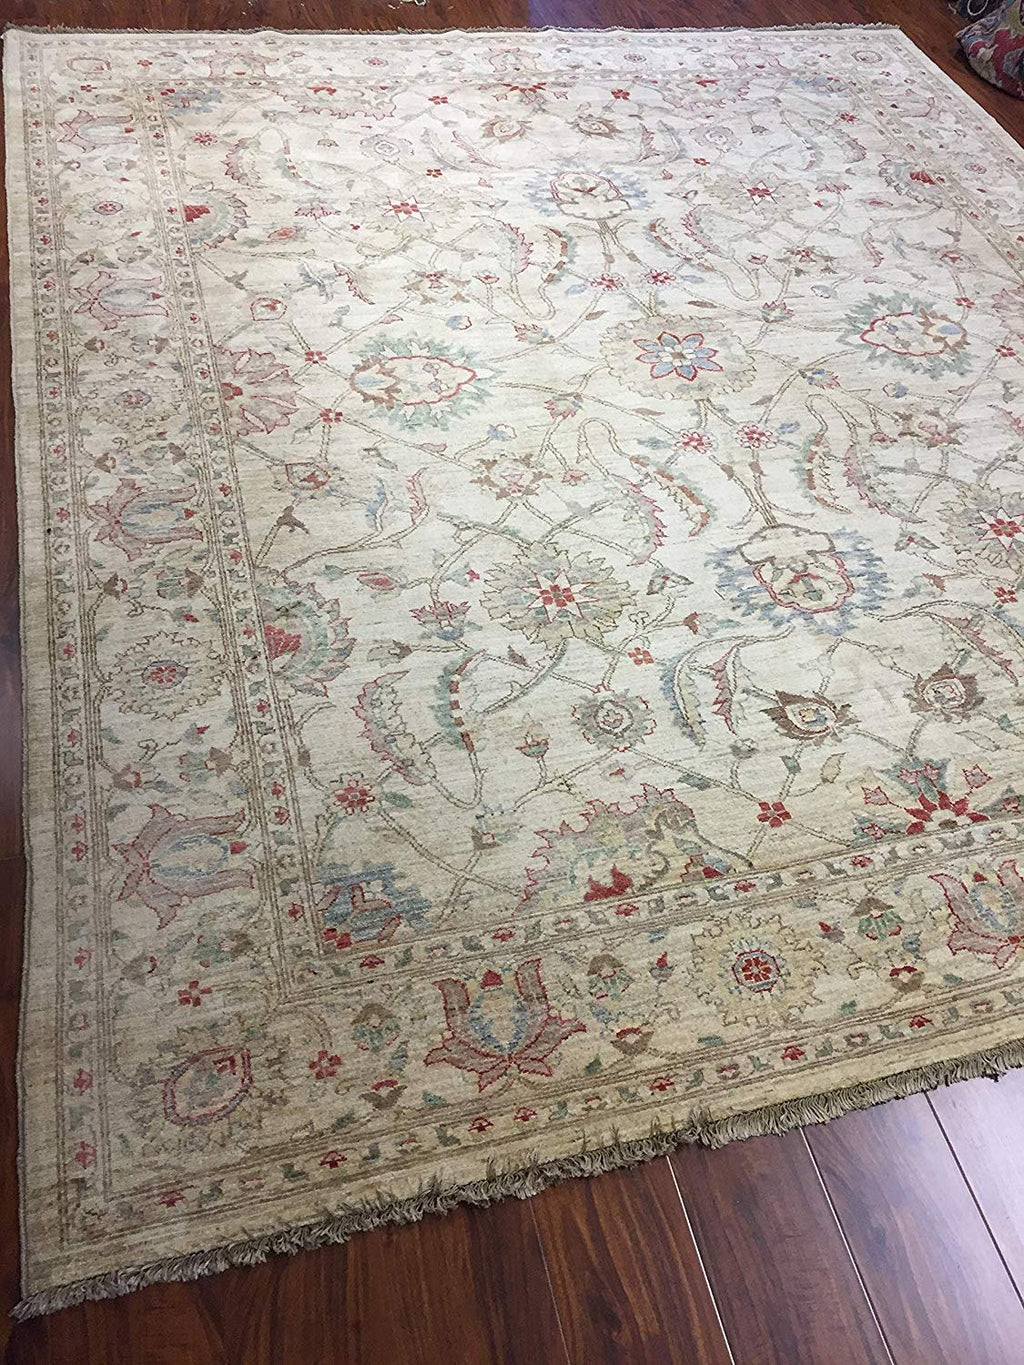 Authentic Handmade fine Pakistan Rug-Real Wool Ziegler Pattern Faded/Vintage-Beige/Multi-(8.1 by 9.4 Feet)